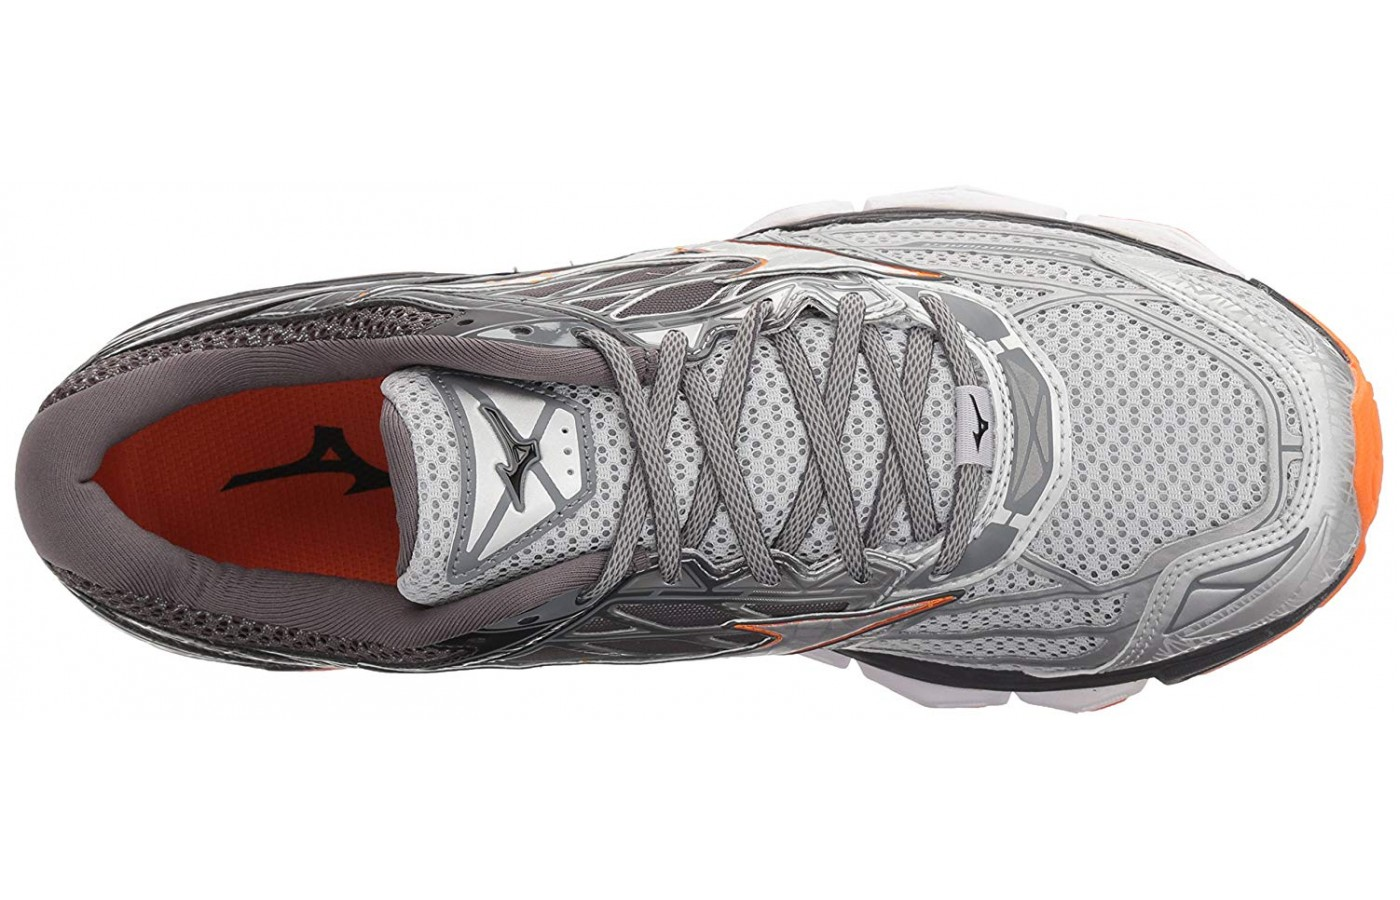 The Mizuno Wave Creation 19 was designed to include a full length U4icX strobel lining.